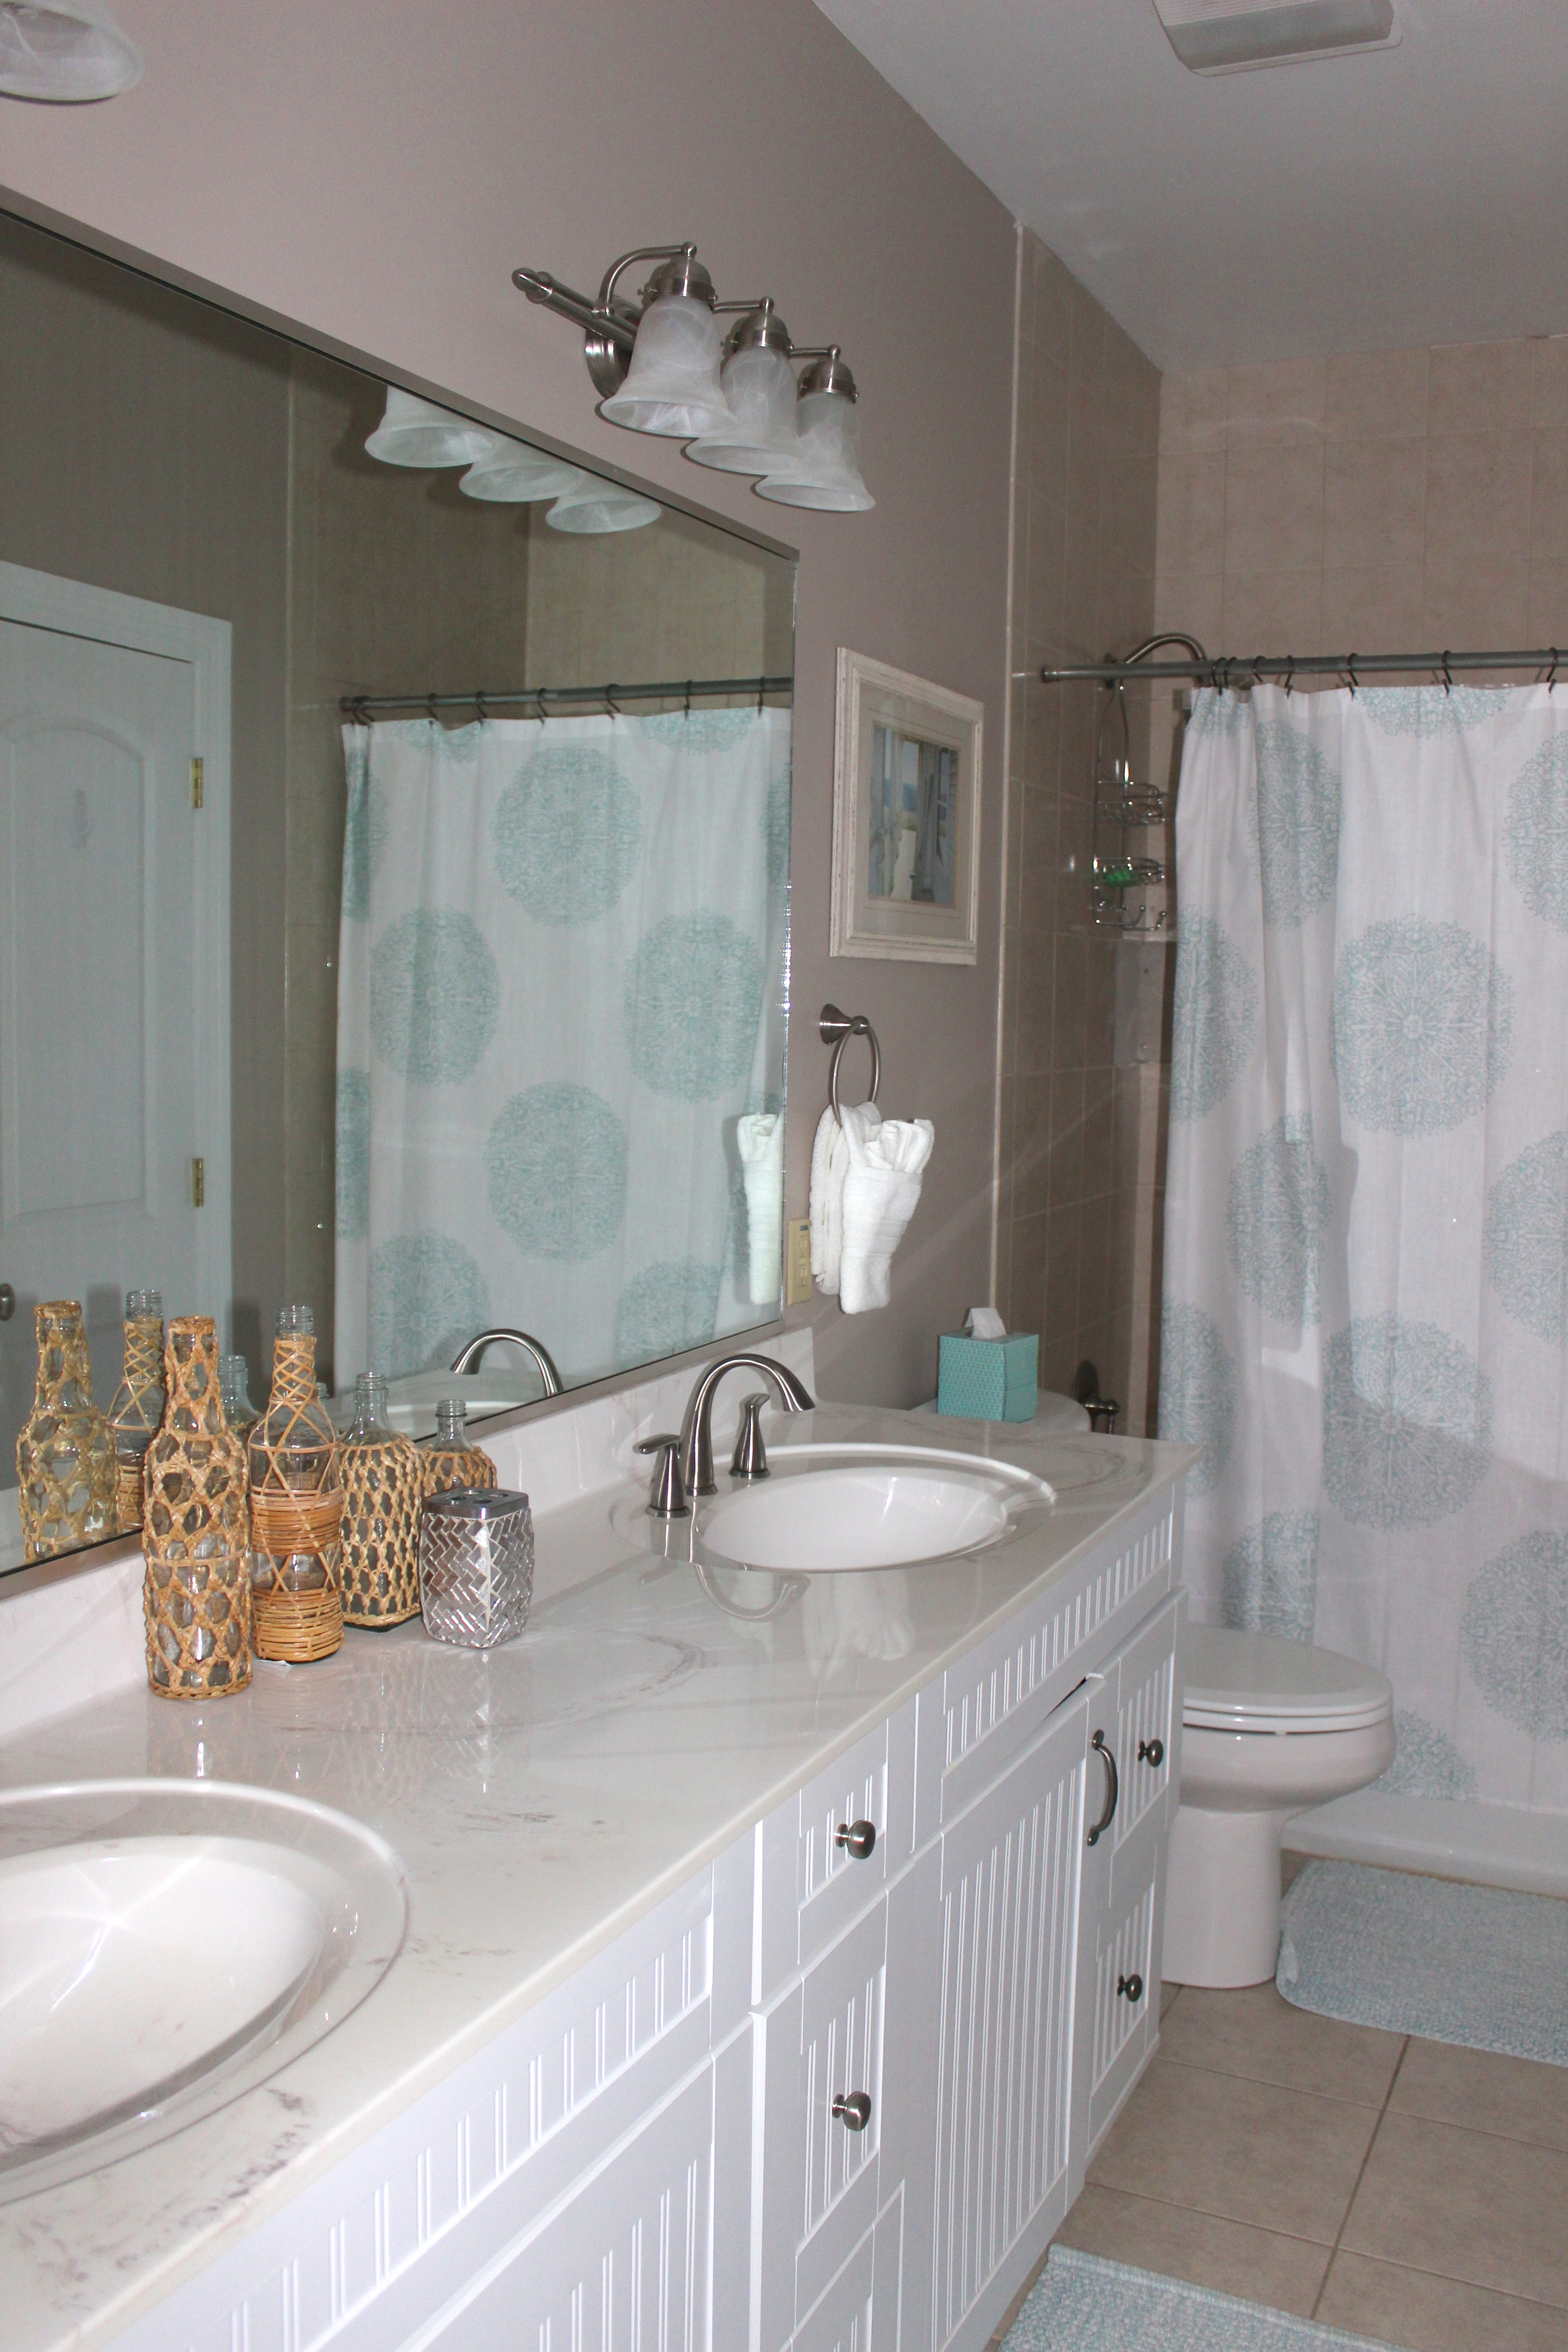 The hall bathroom has a double sink vanity and shower/tub.